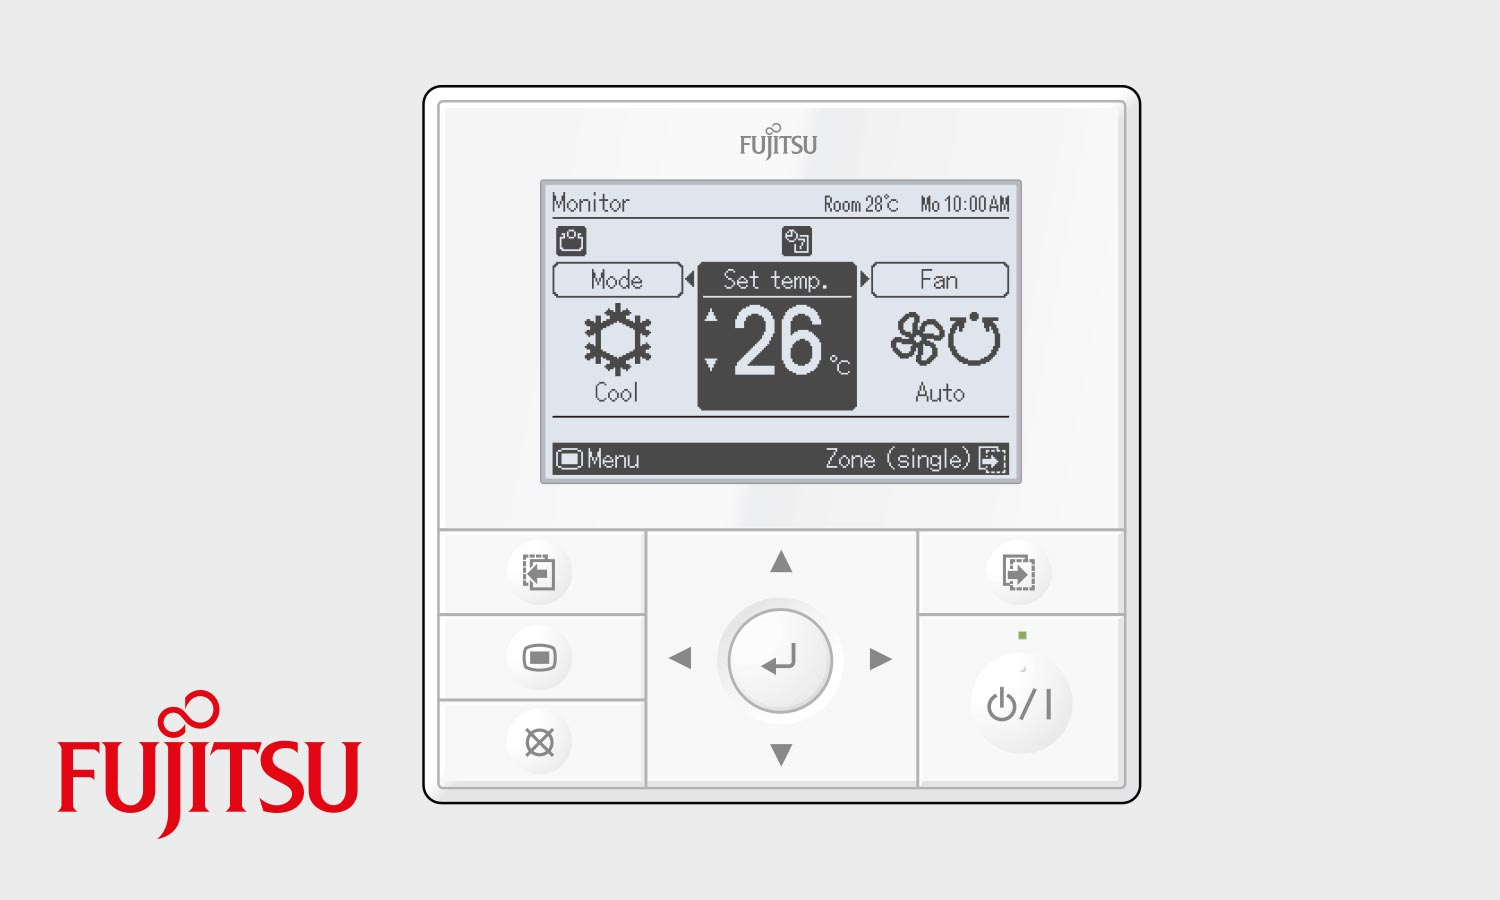 fujitsu-heat-pumps-ducted-zone-control-panel